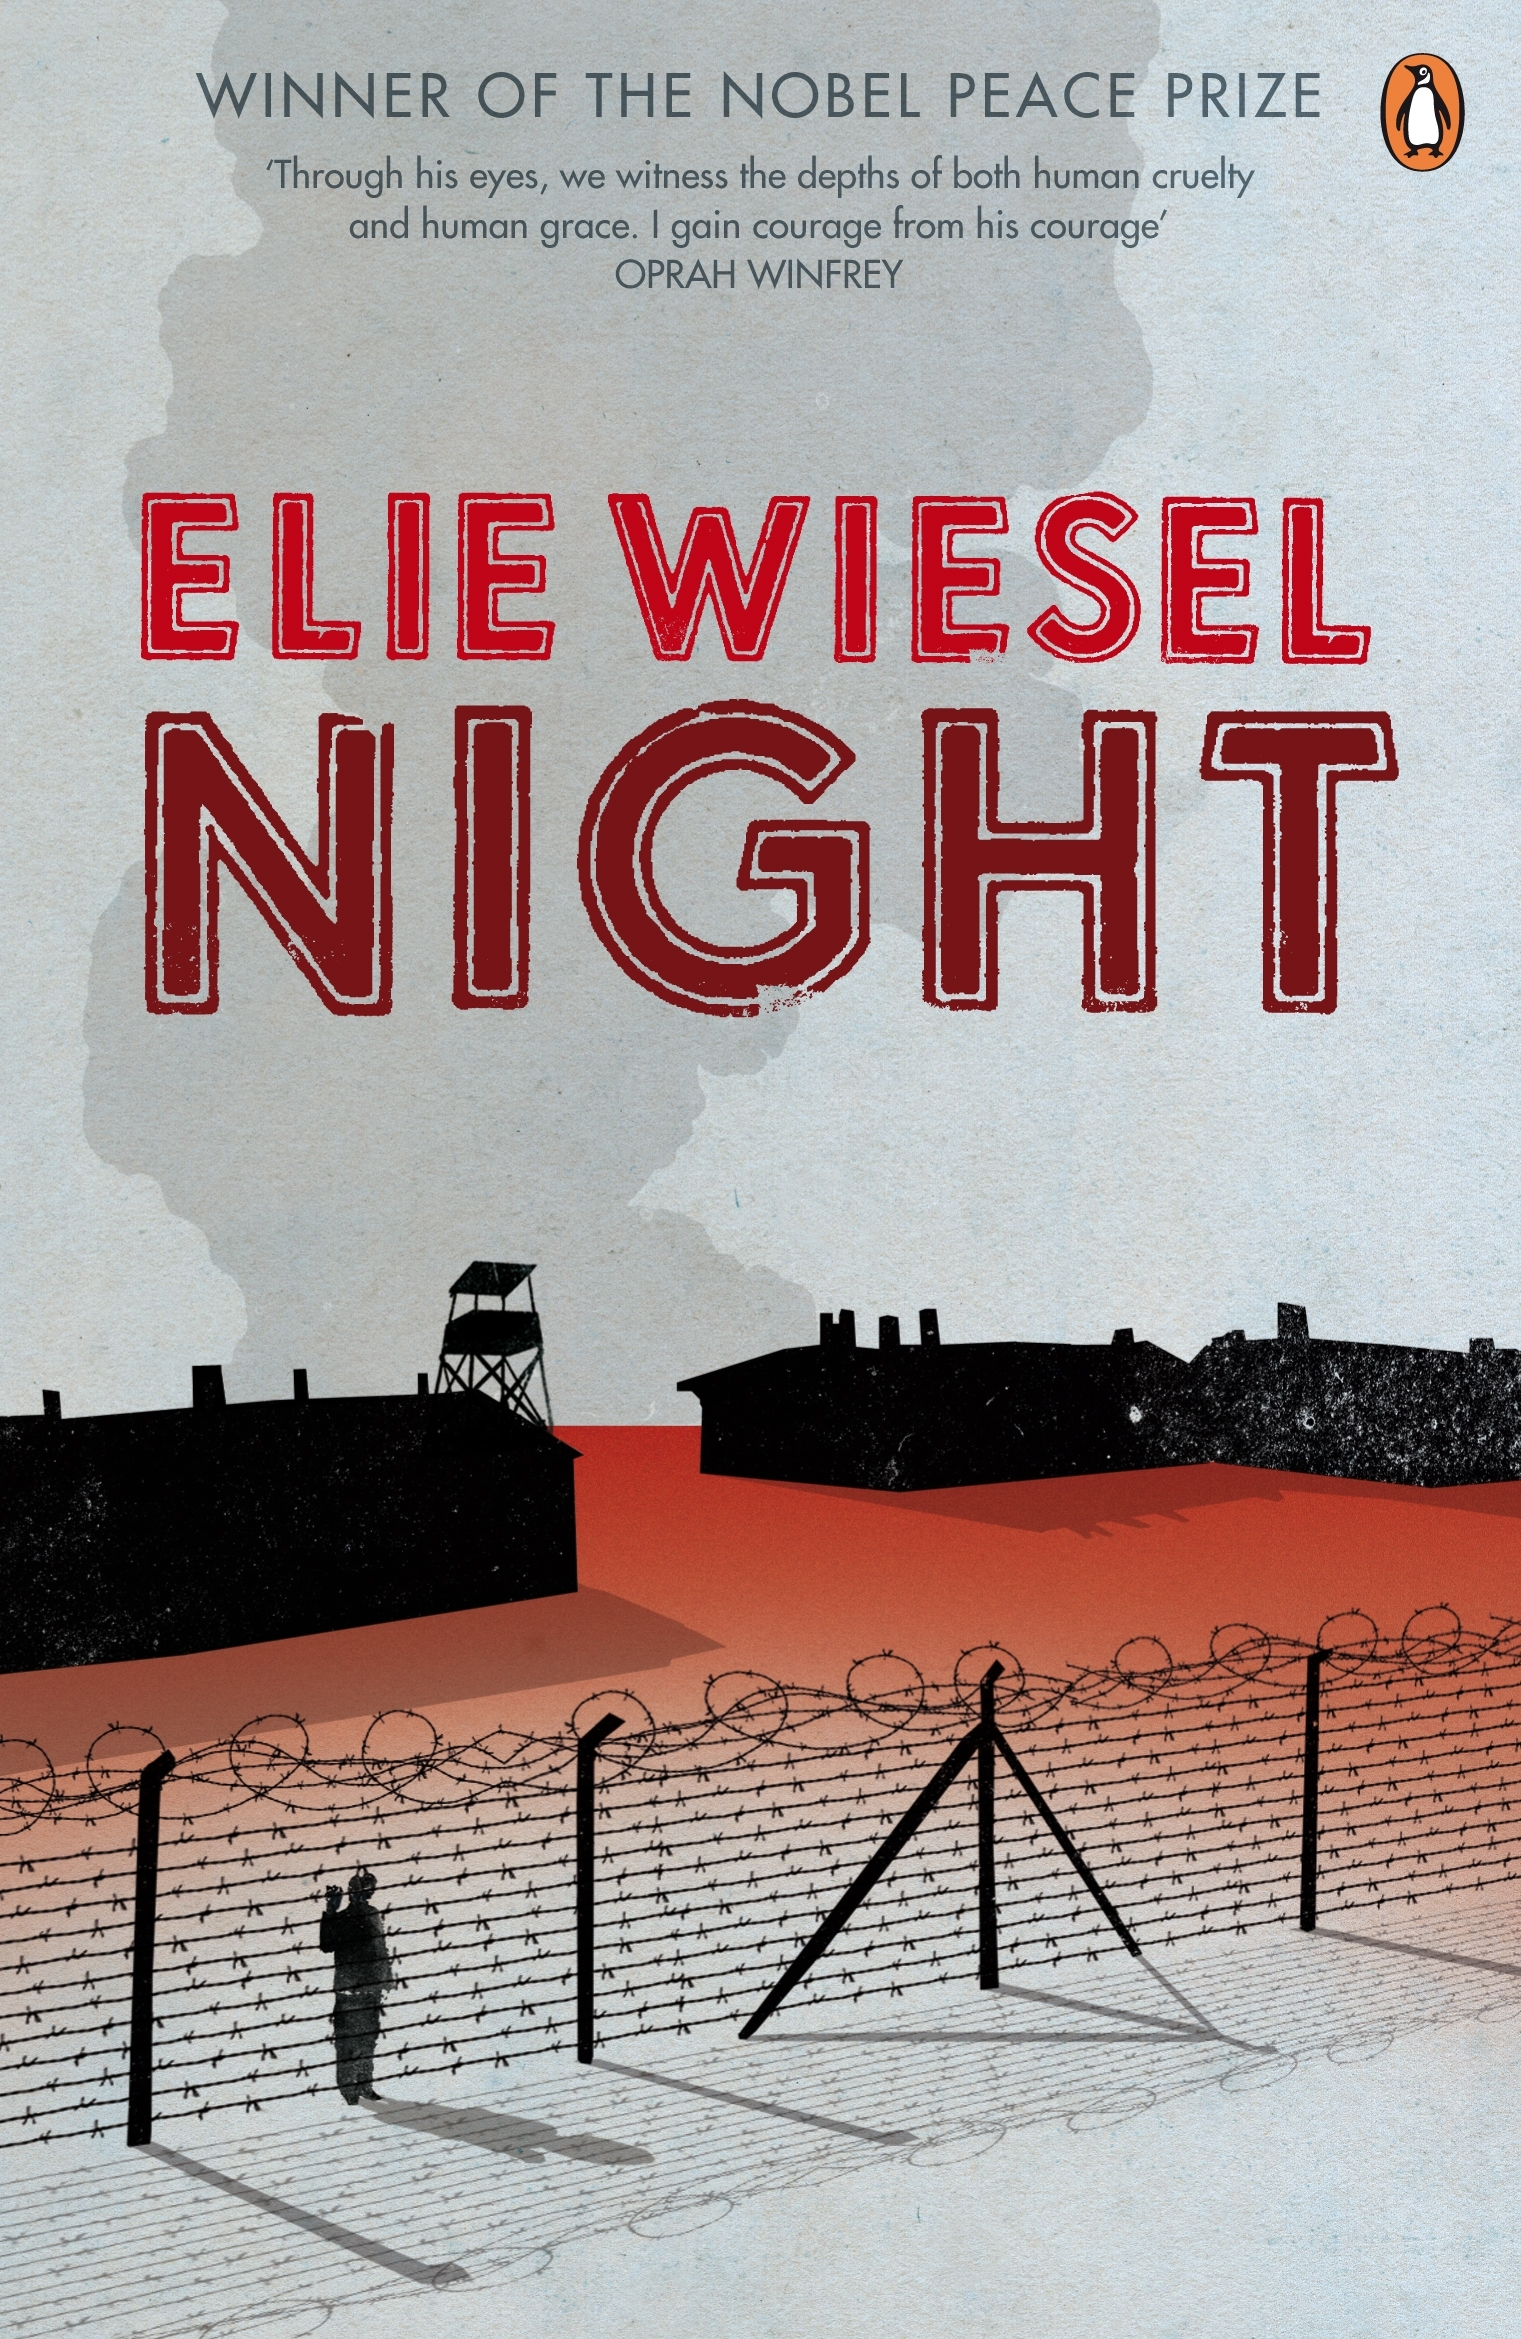 the subject of holocaus in elie wiesels autobiography night Elie wiesel, a nobel peace prize winner and holocaust survivor who wrote the acclaimed memoir night, died saturday at the age of 87.